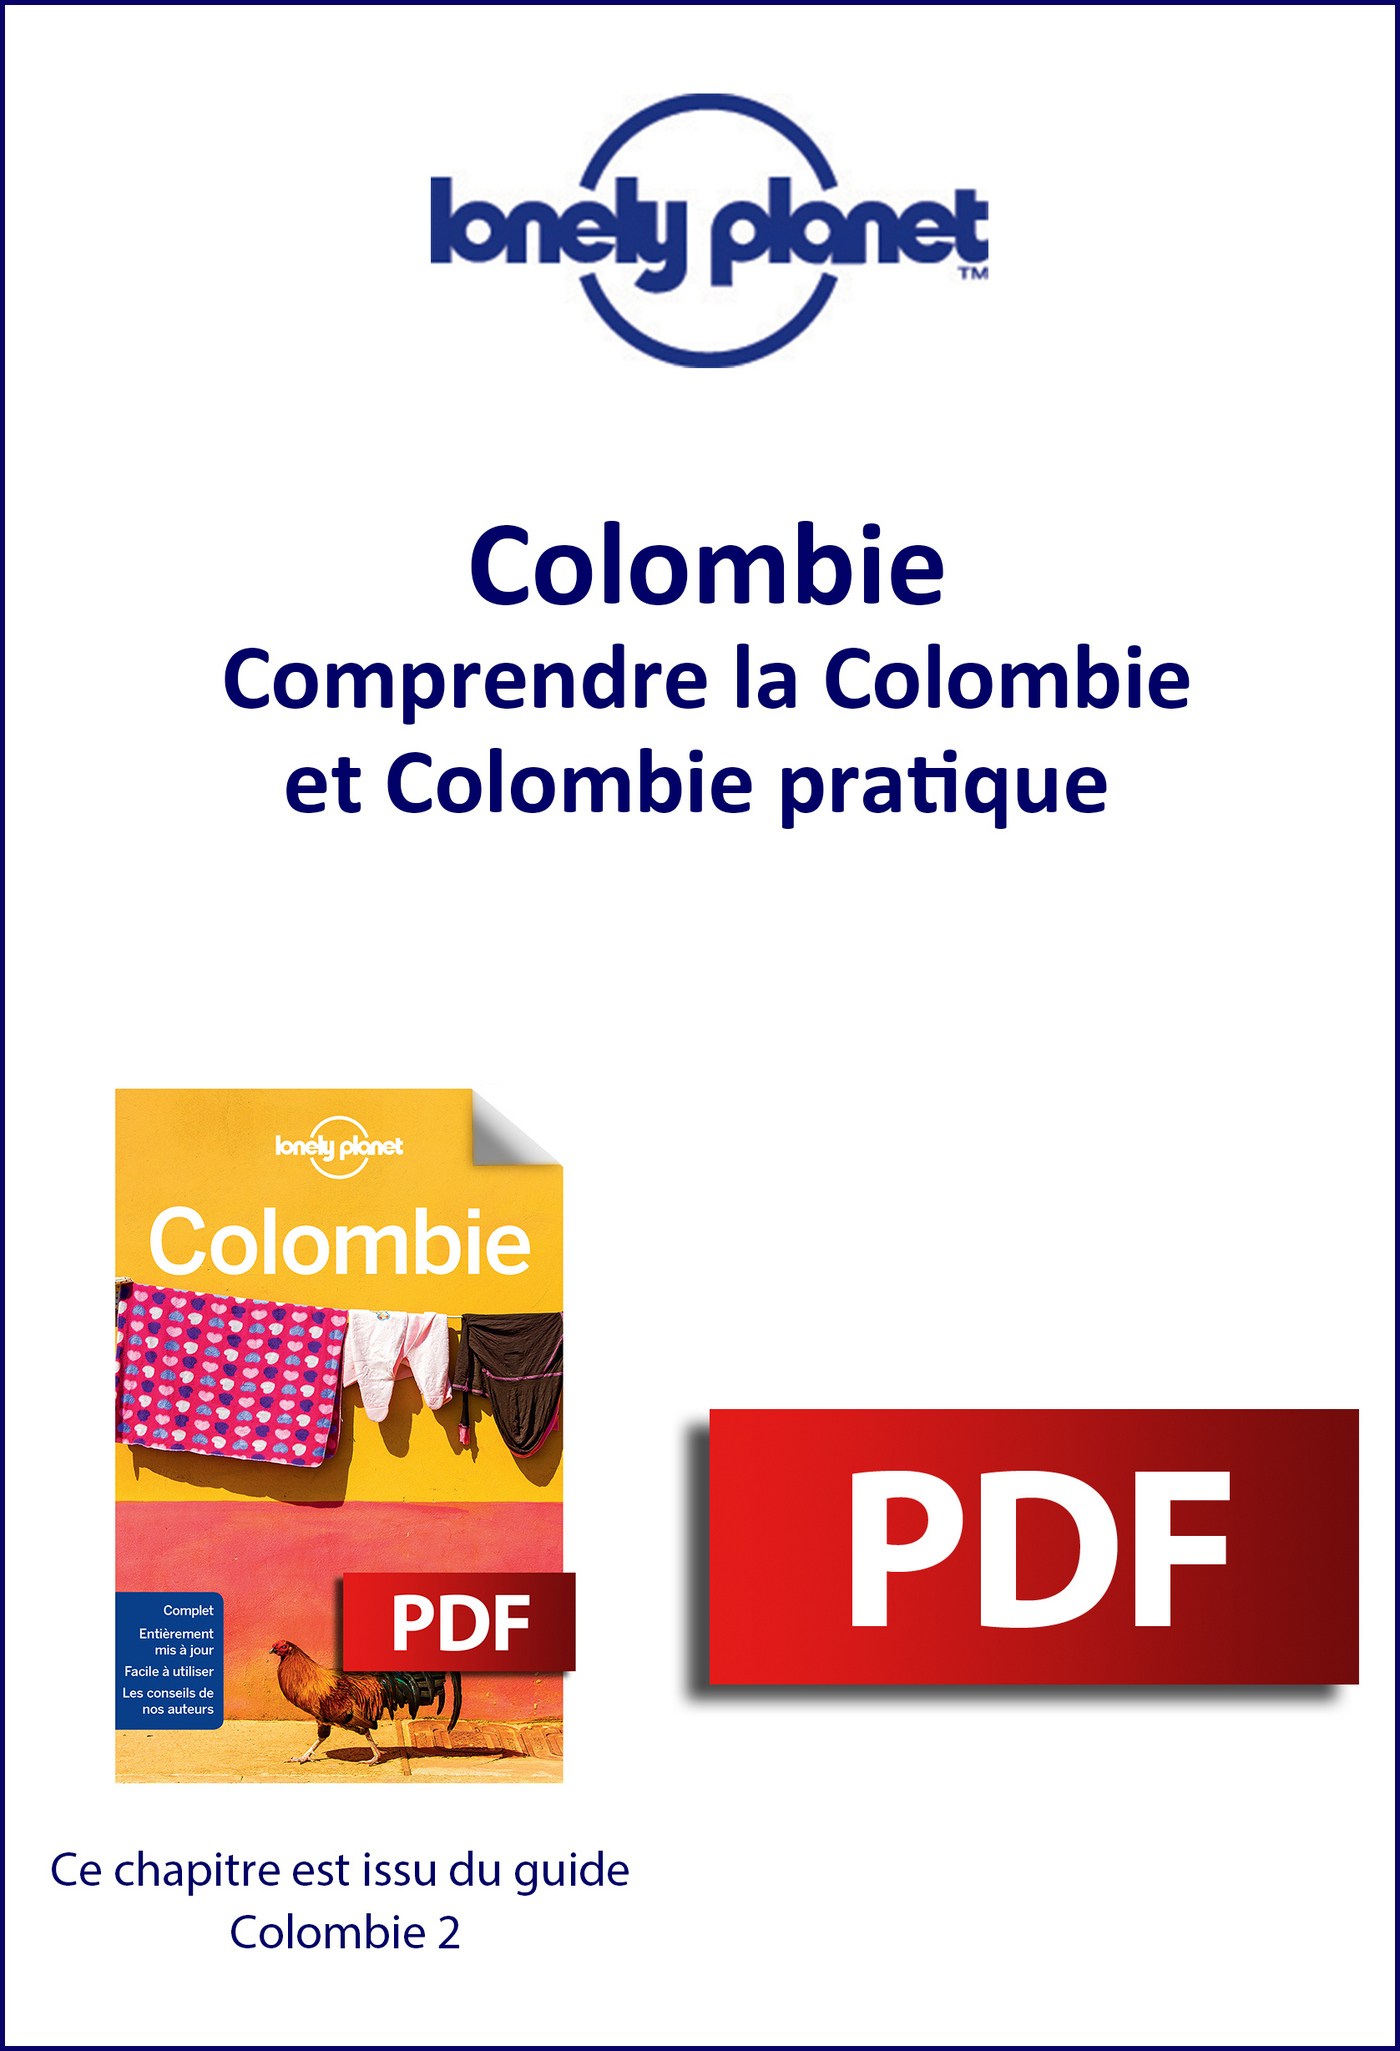 Colombie - Comprendre la Colombie